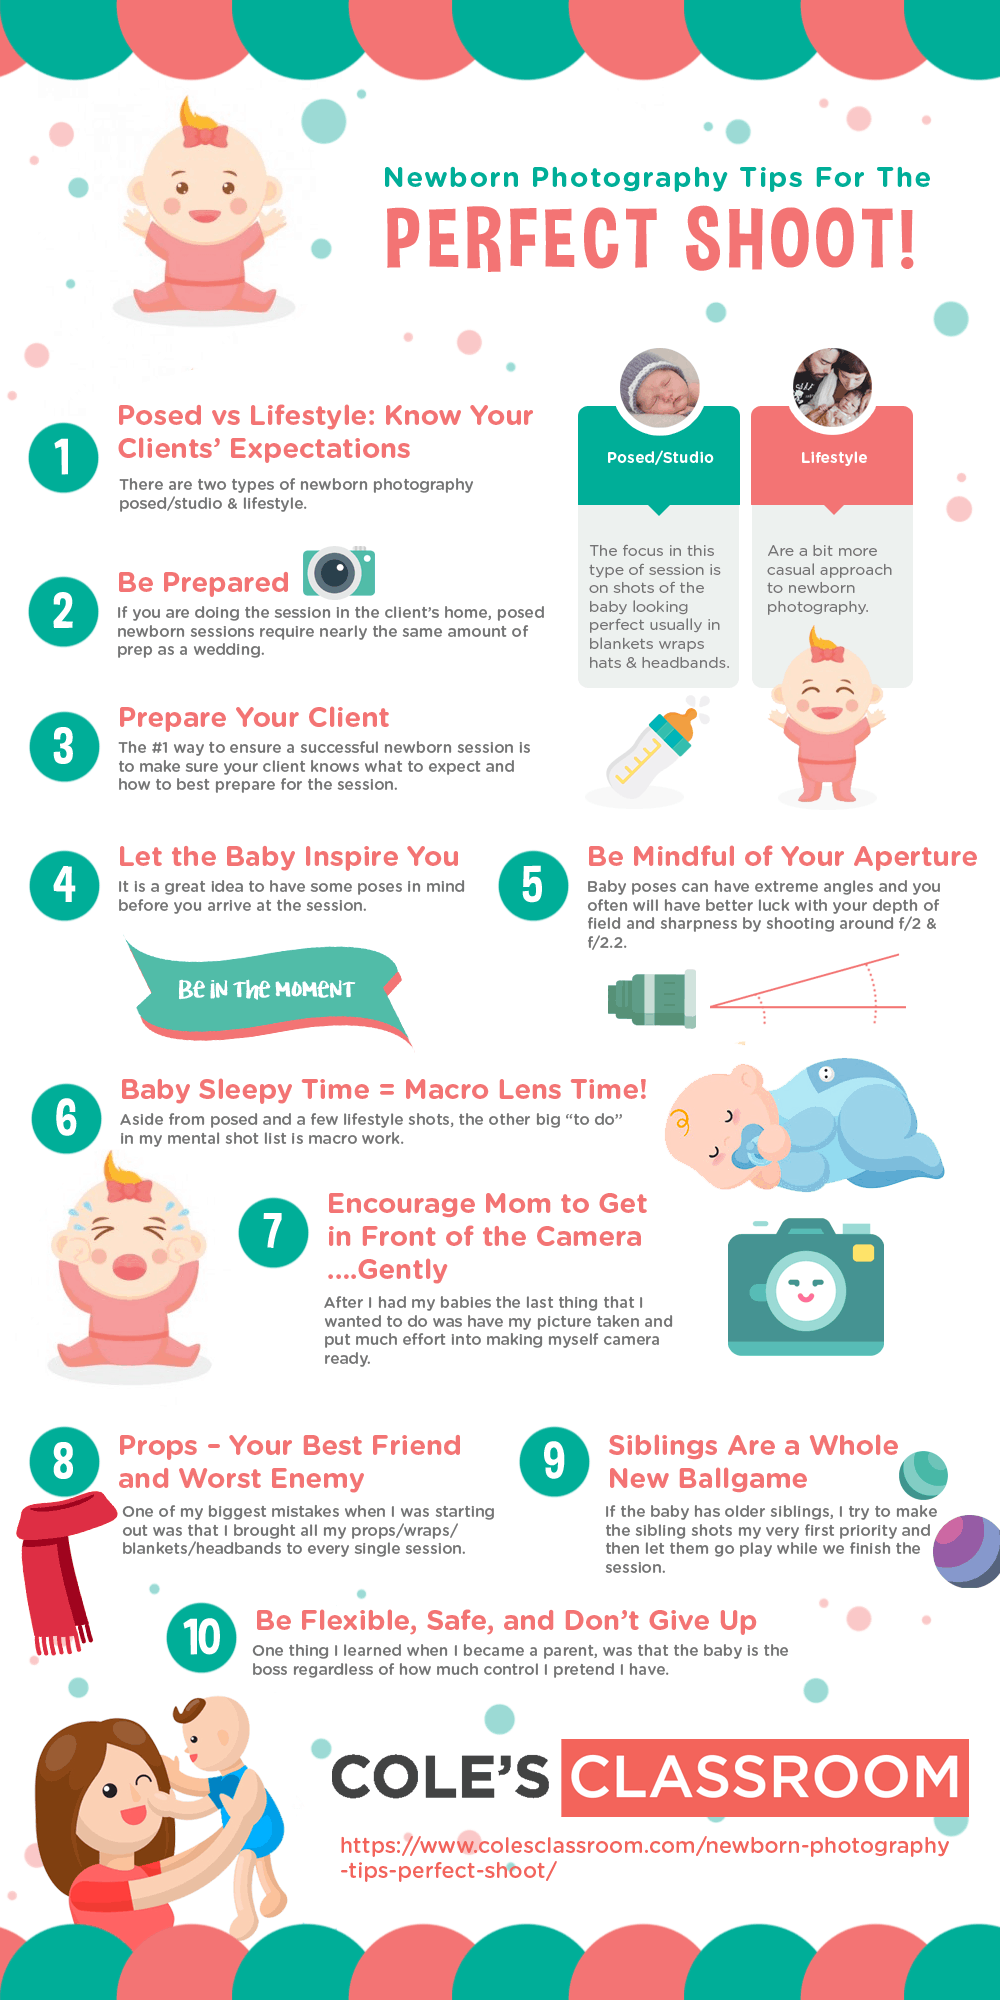 effcc1ef515d Newborn Photography Tips for the Perfect Shoot!